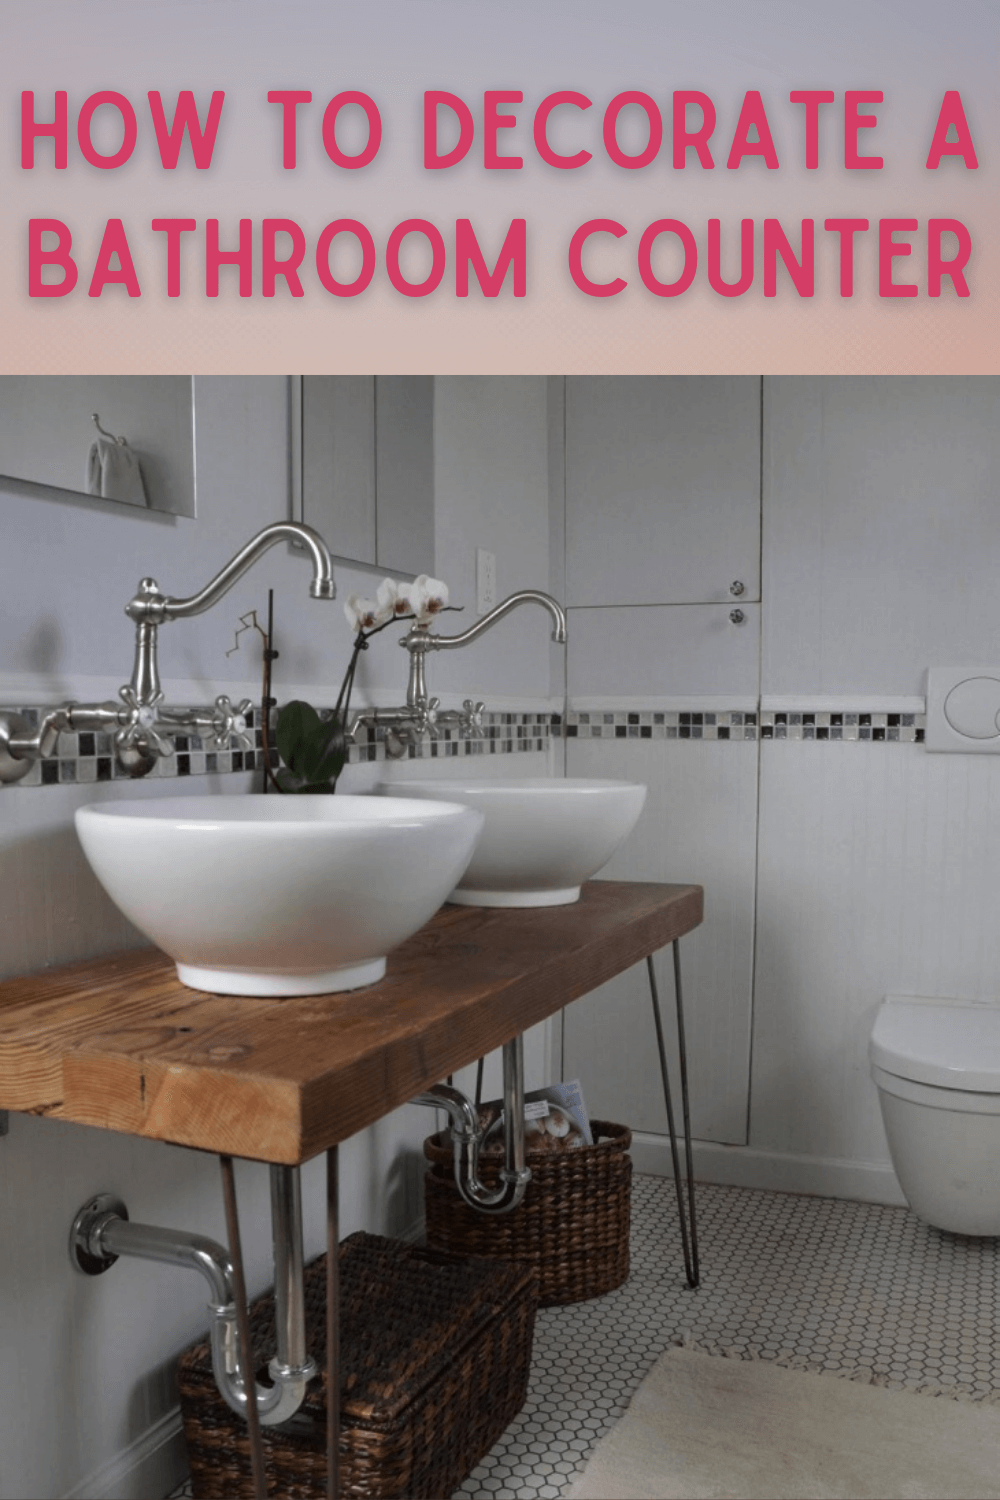 HOW TO DECORATE A BATHROOM COUNTER